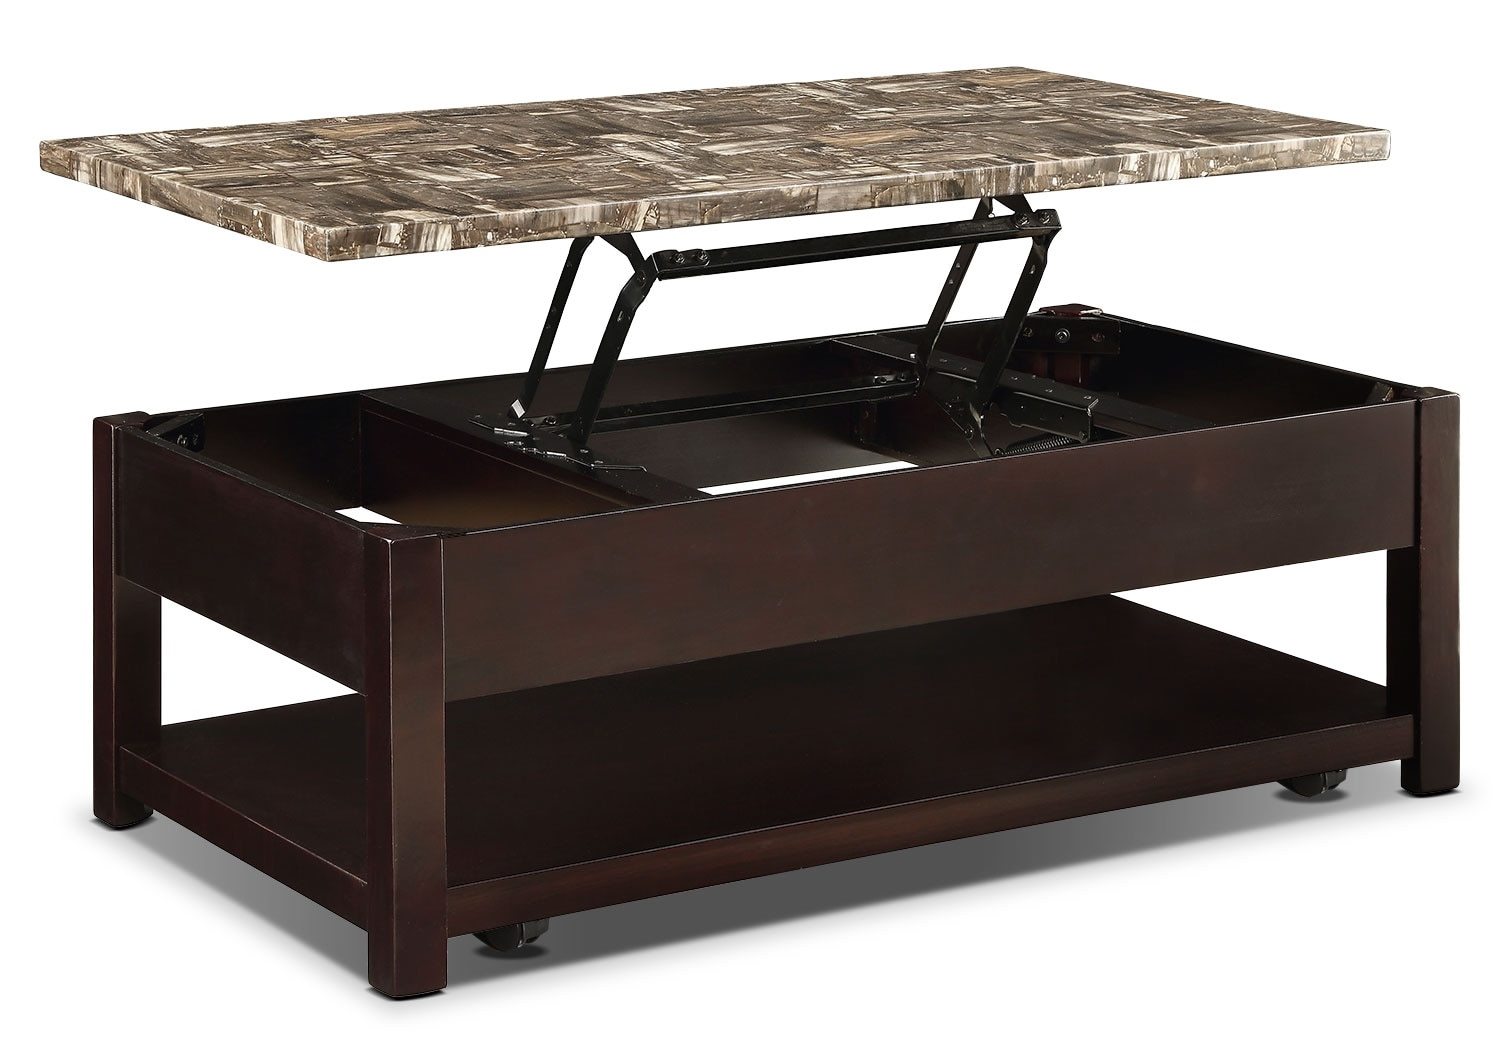 Sicily Coffee Table with Lift-Top and Casters – Brown